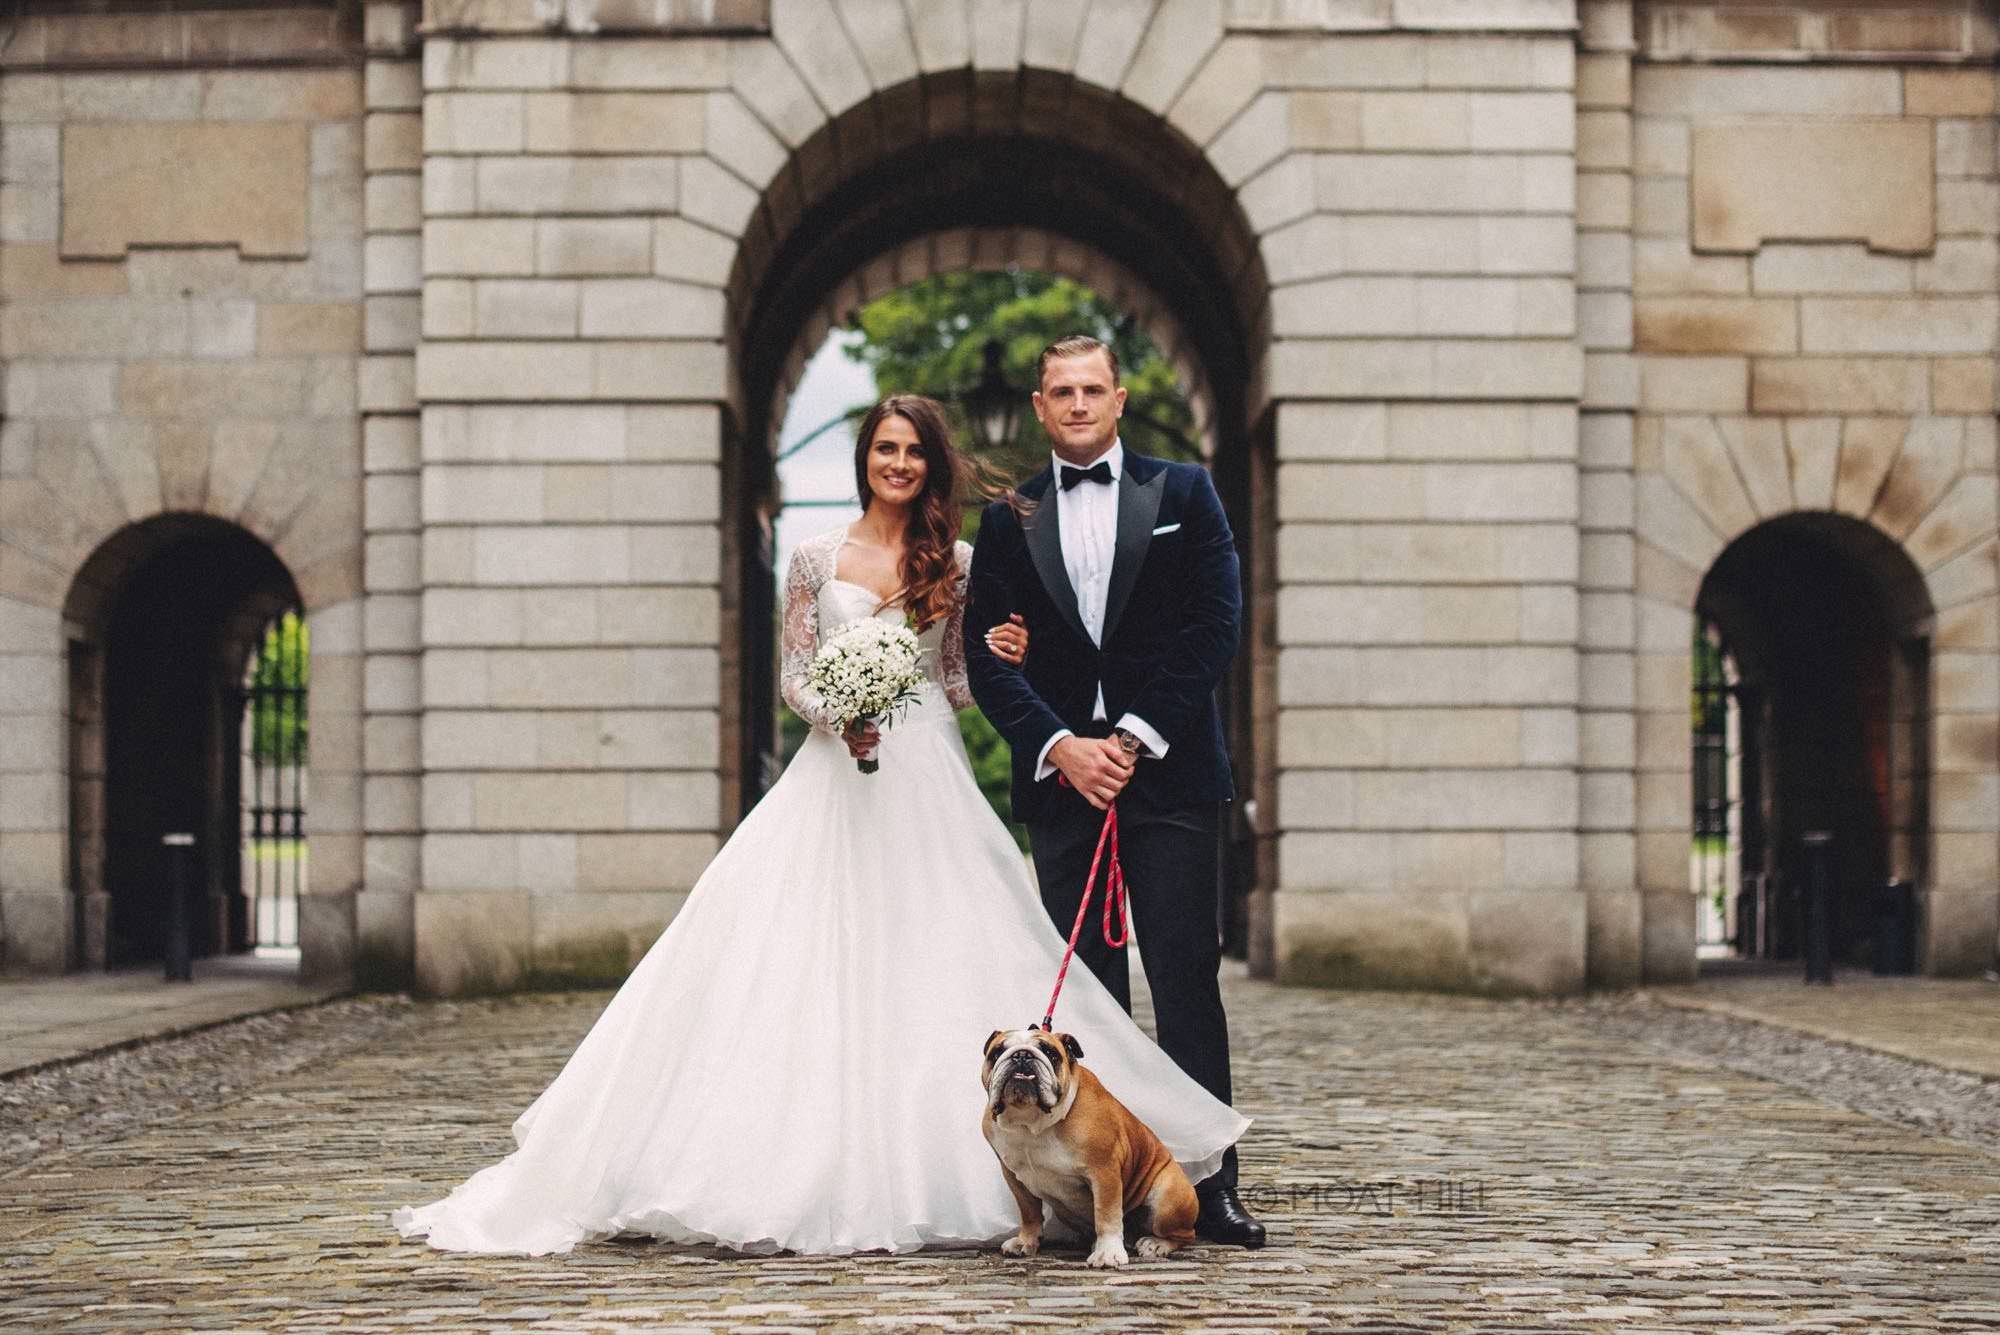 Jamie Heaslip Wedding to Sheena at the Kings Inn Dublin by wedding photographers Moat Hill.